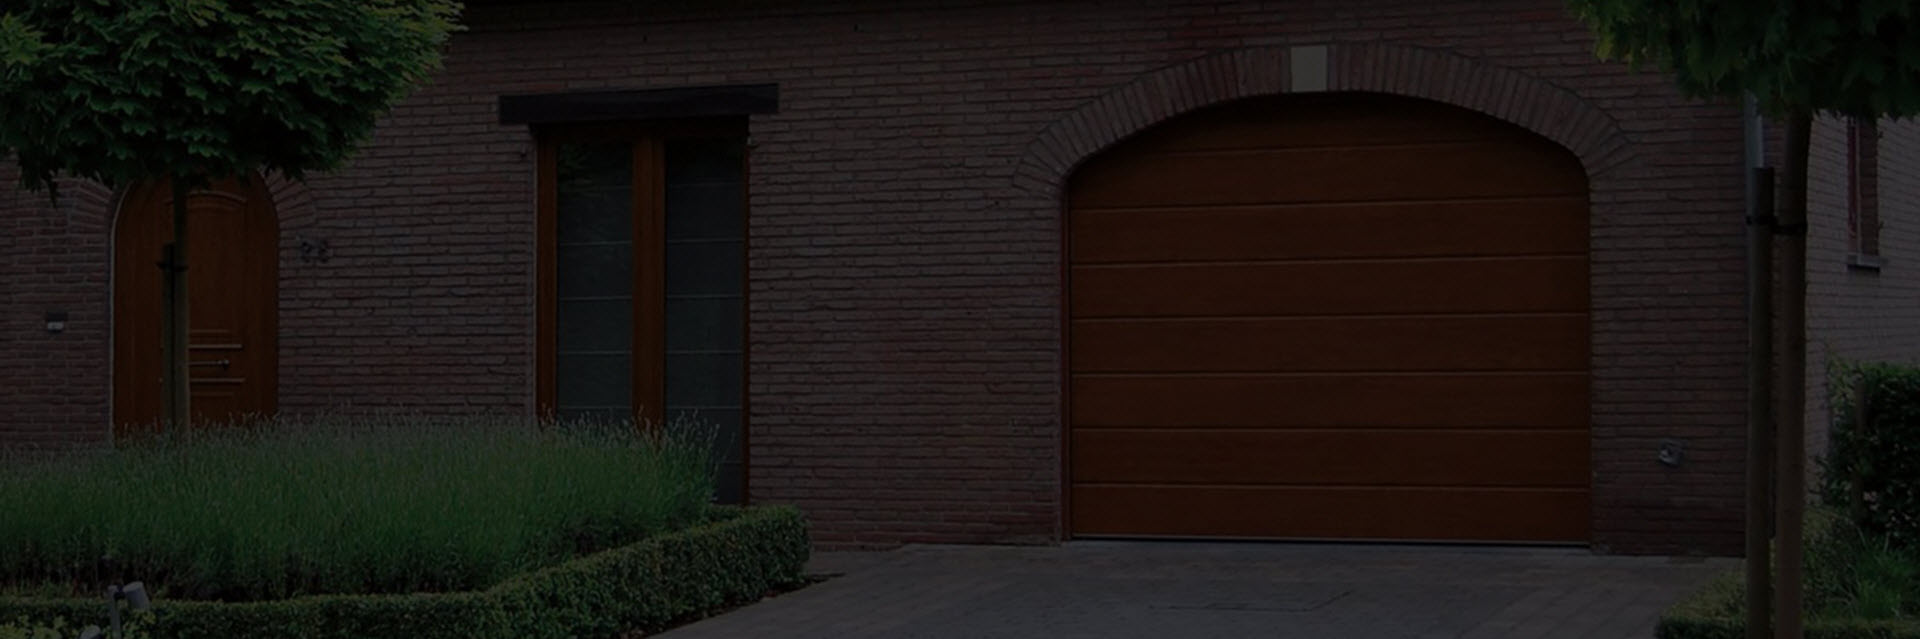 Buy Carteck Garage Doors London, by Chalfont Garage Doors